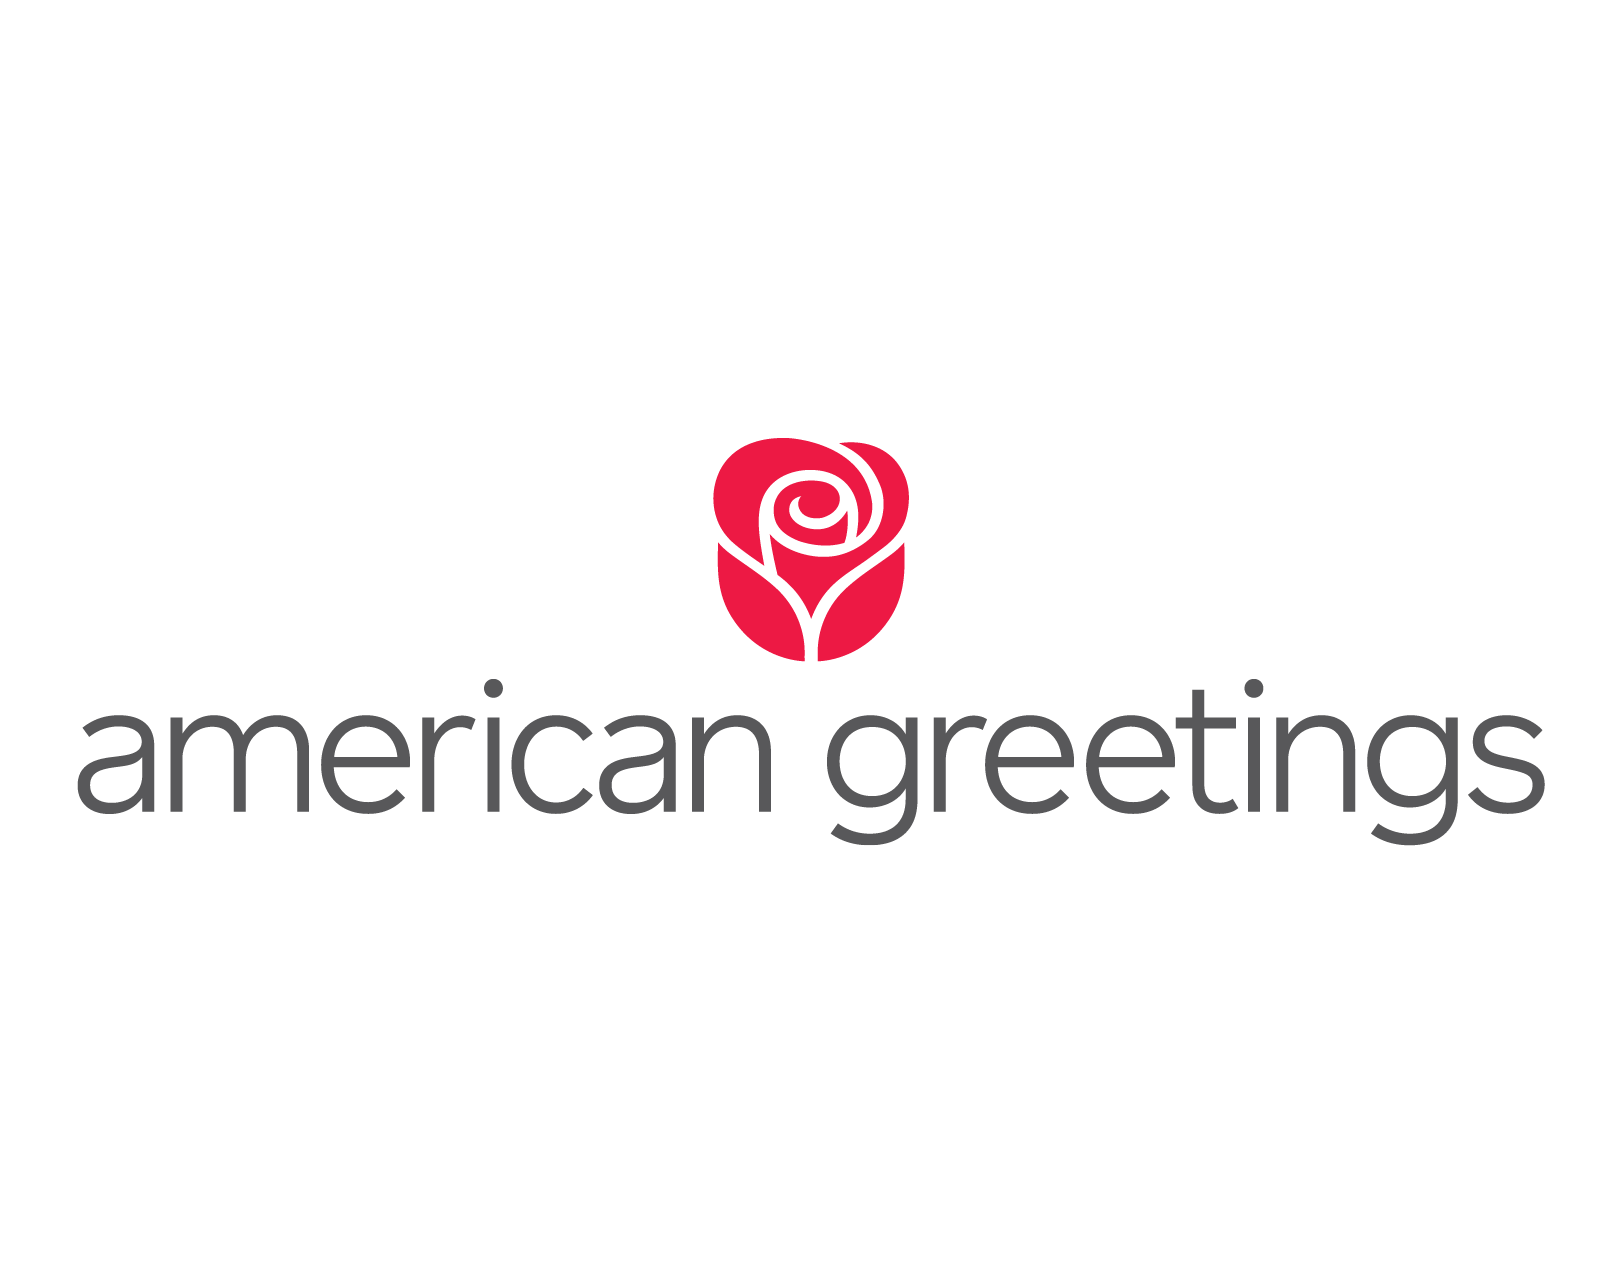 Christopher wilson art directorillustrator american greetings kristyandbryce Images